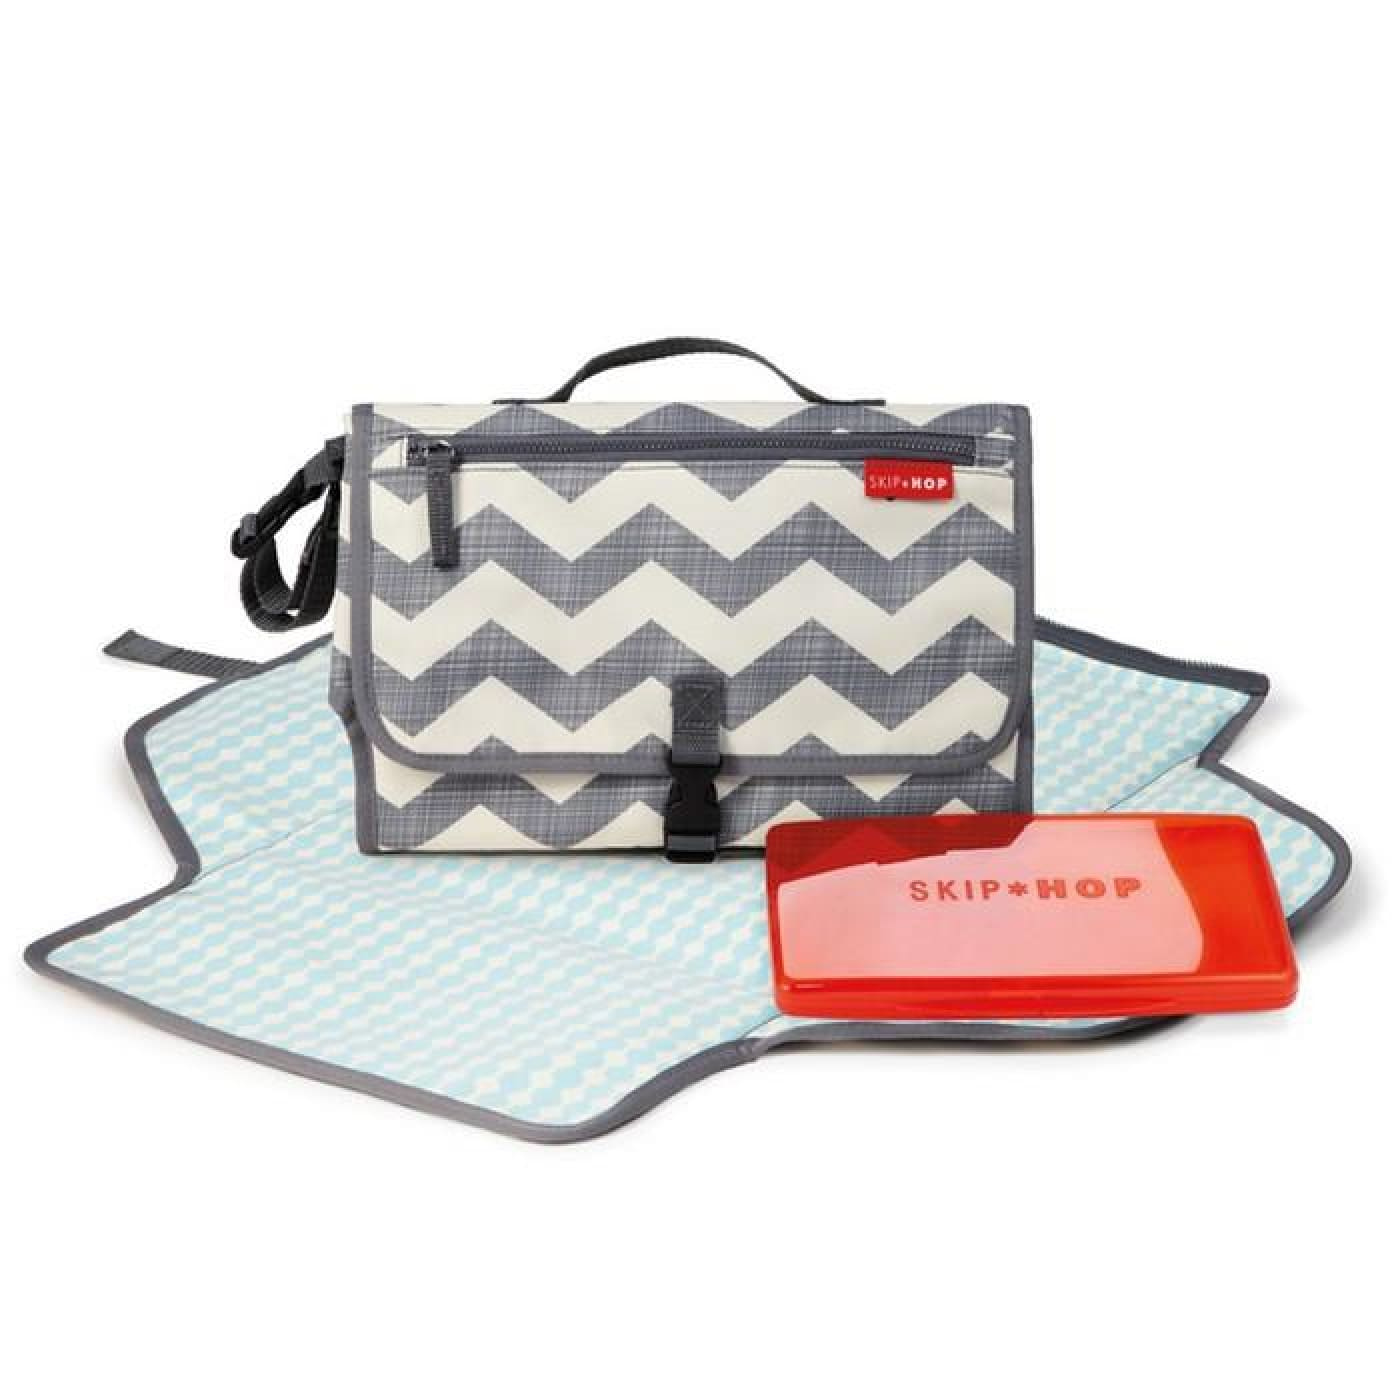 Skip Hop Pronto Changing Station - Chevron - ON THE GO - NAPPY BAGS/LUGGAGE